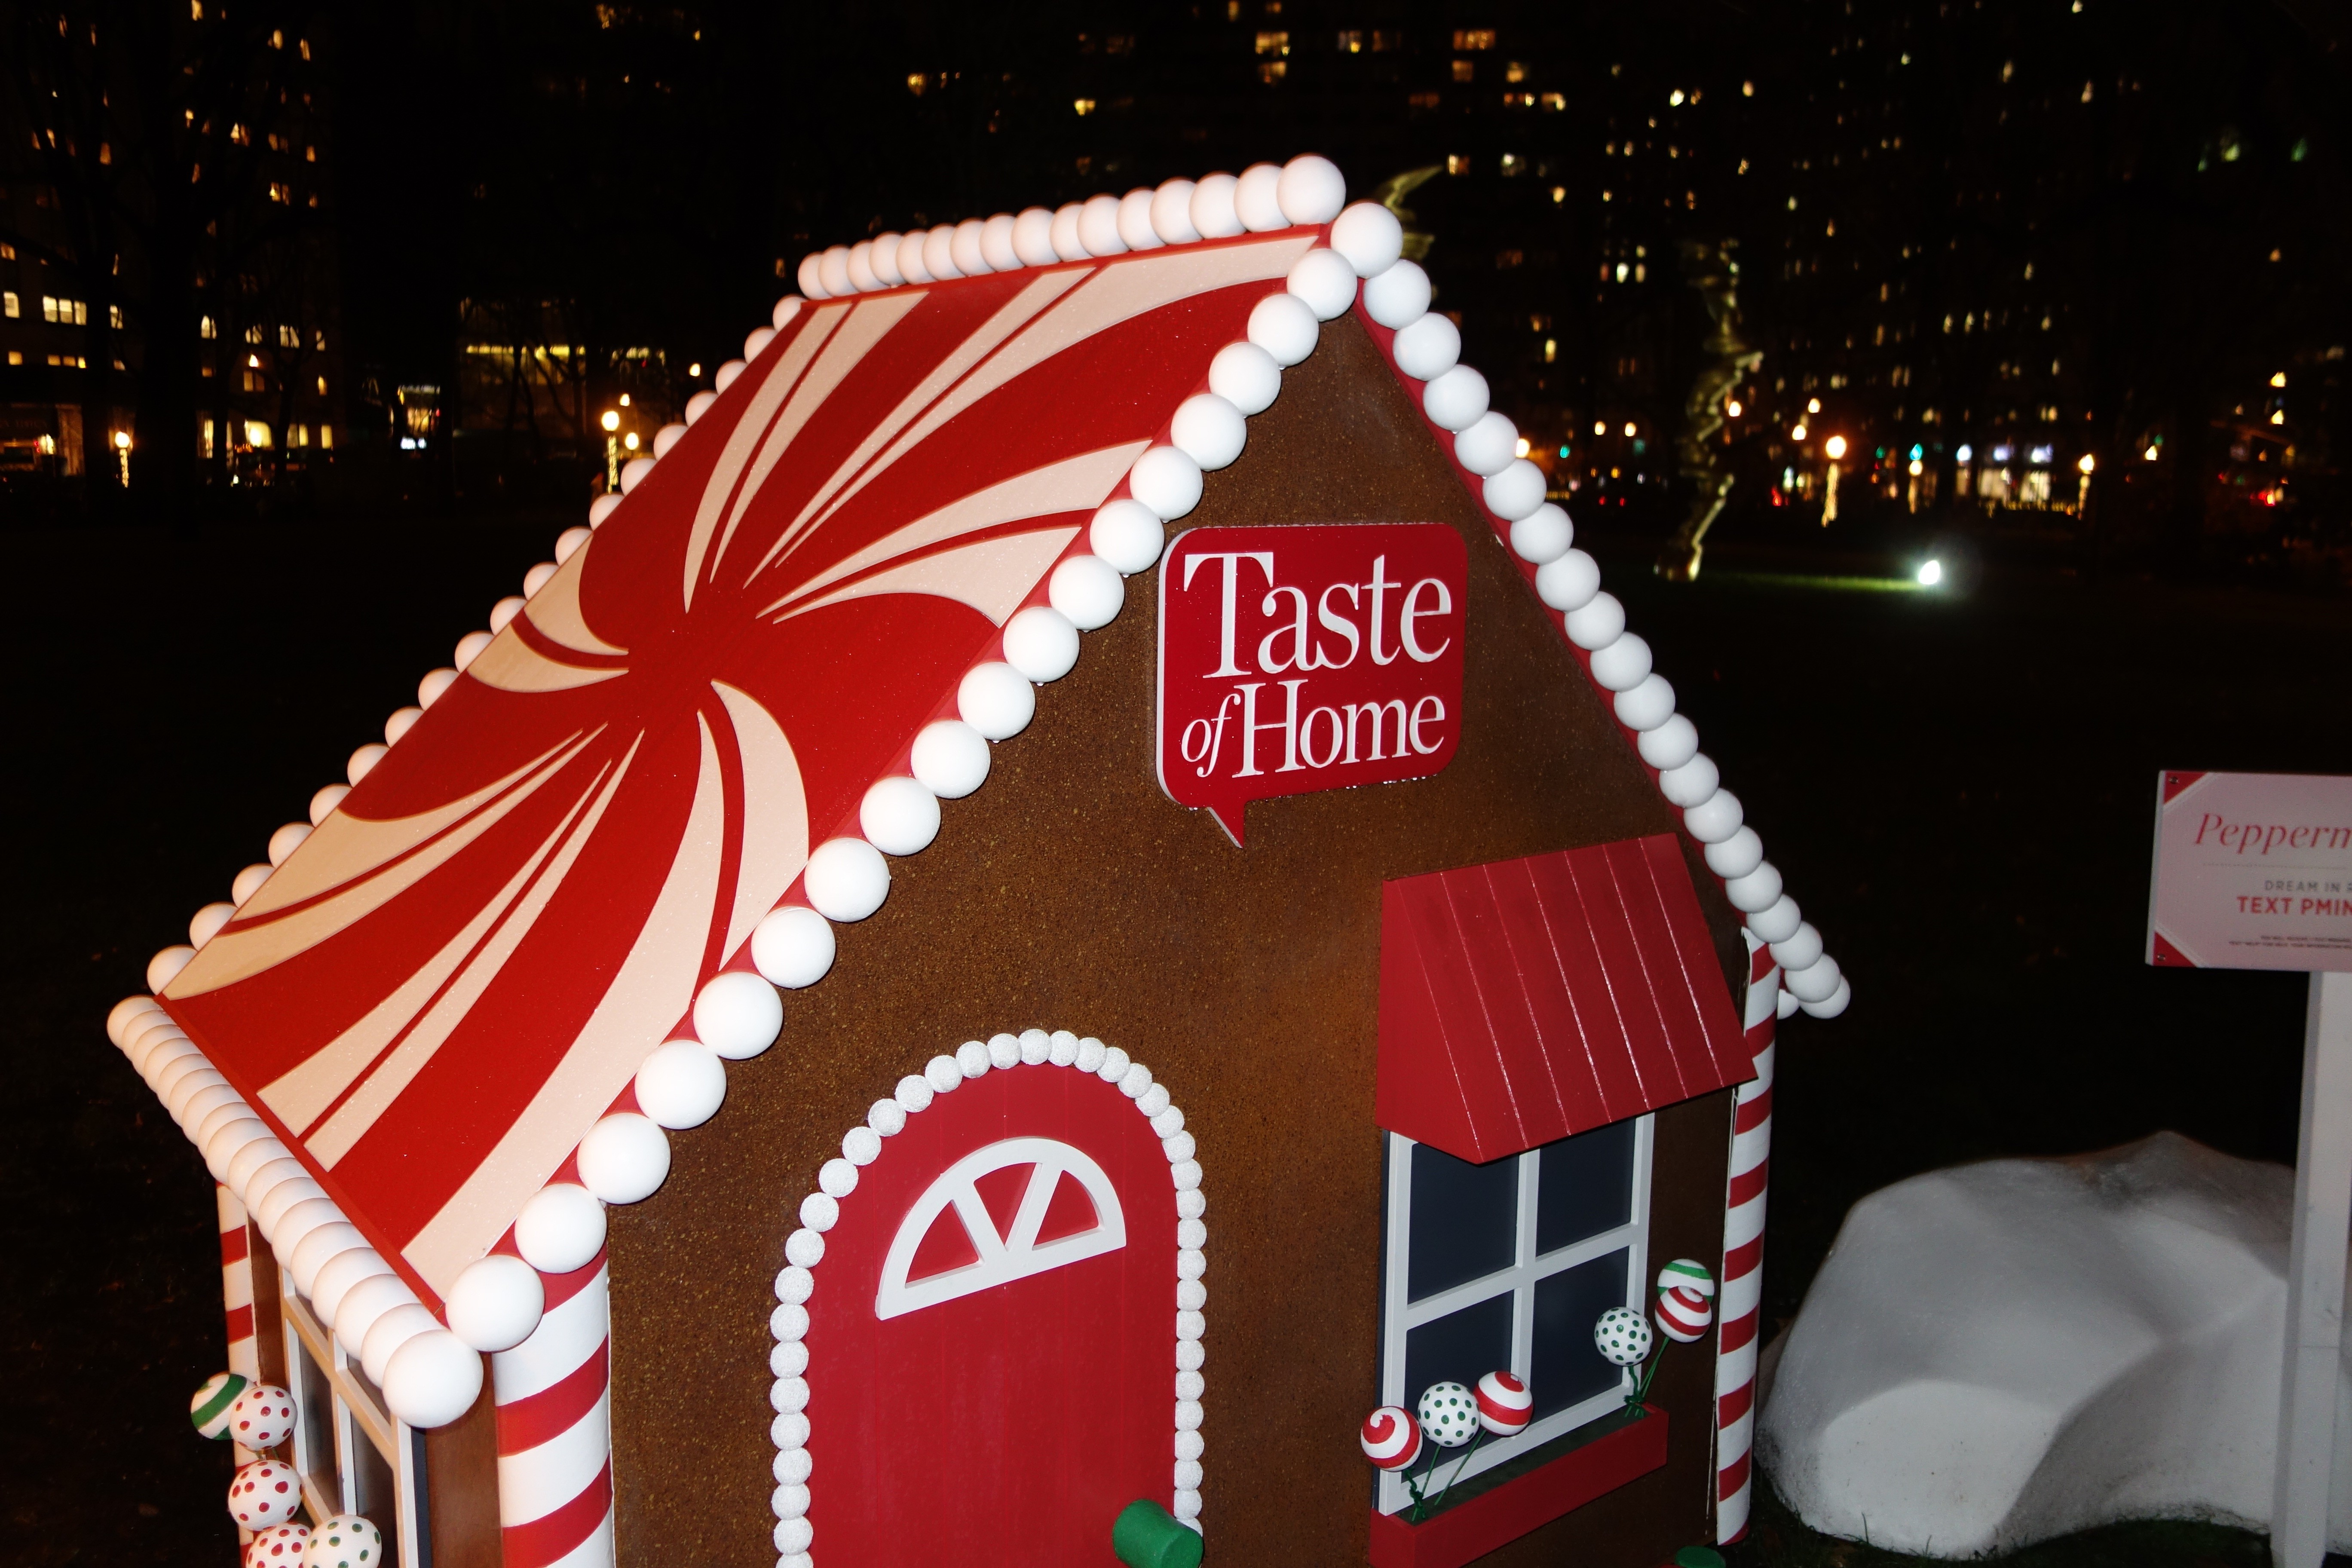 Make your own gingerbread house this weekend